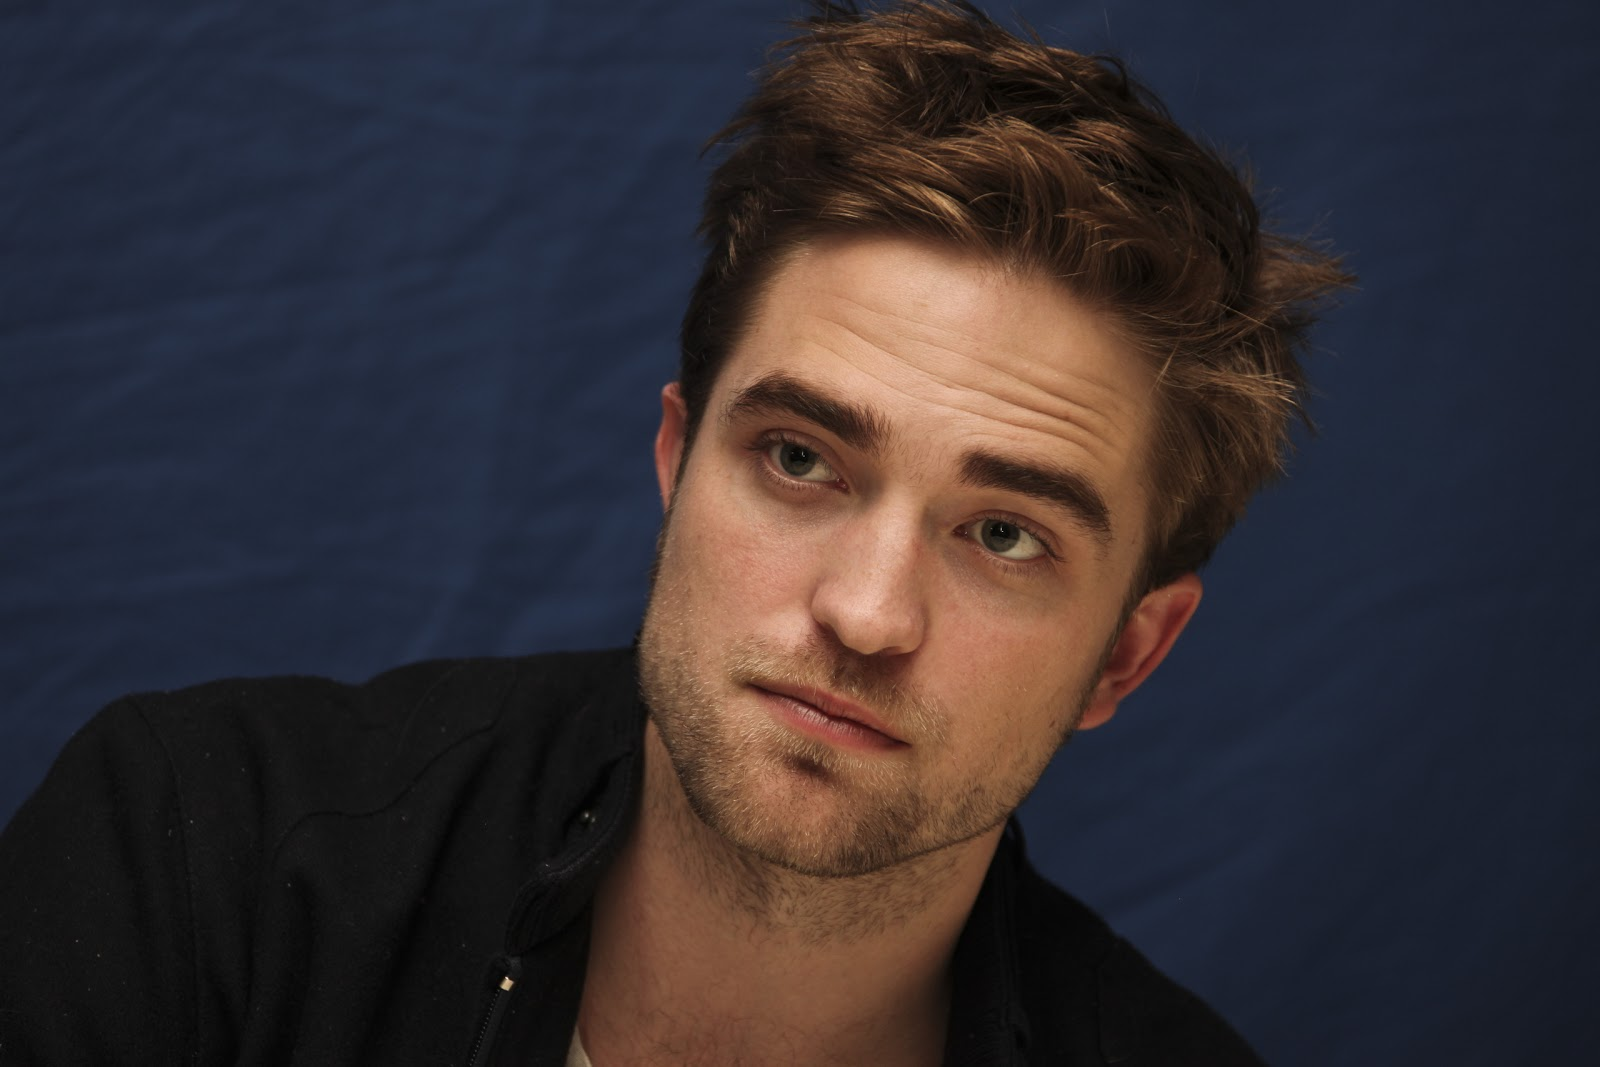 http://2.bp.blogspot.com/-bGuwEiYtT6g/UM-6M762sZI/AAAAAAAATe8/zZRu1uBCv9o/s1600/-Breaking-Dawn-Press-Conference-Portrait-Session-robert-pattinson-26696490-2560-1707.jpg